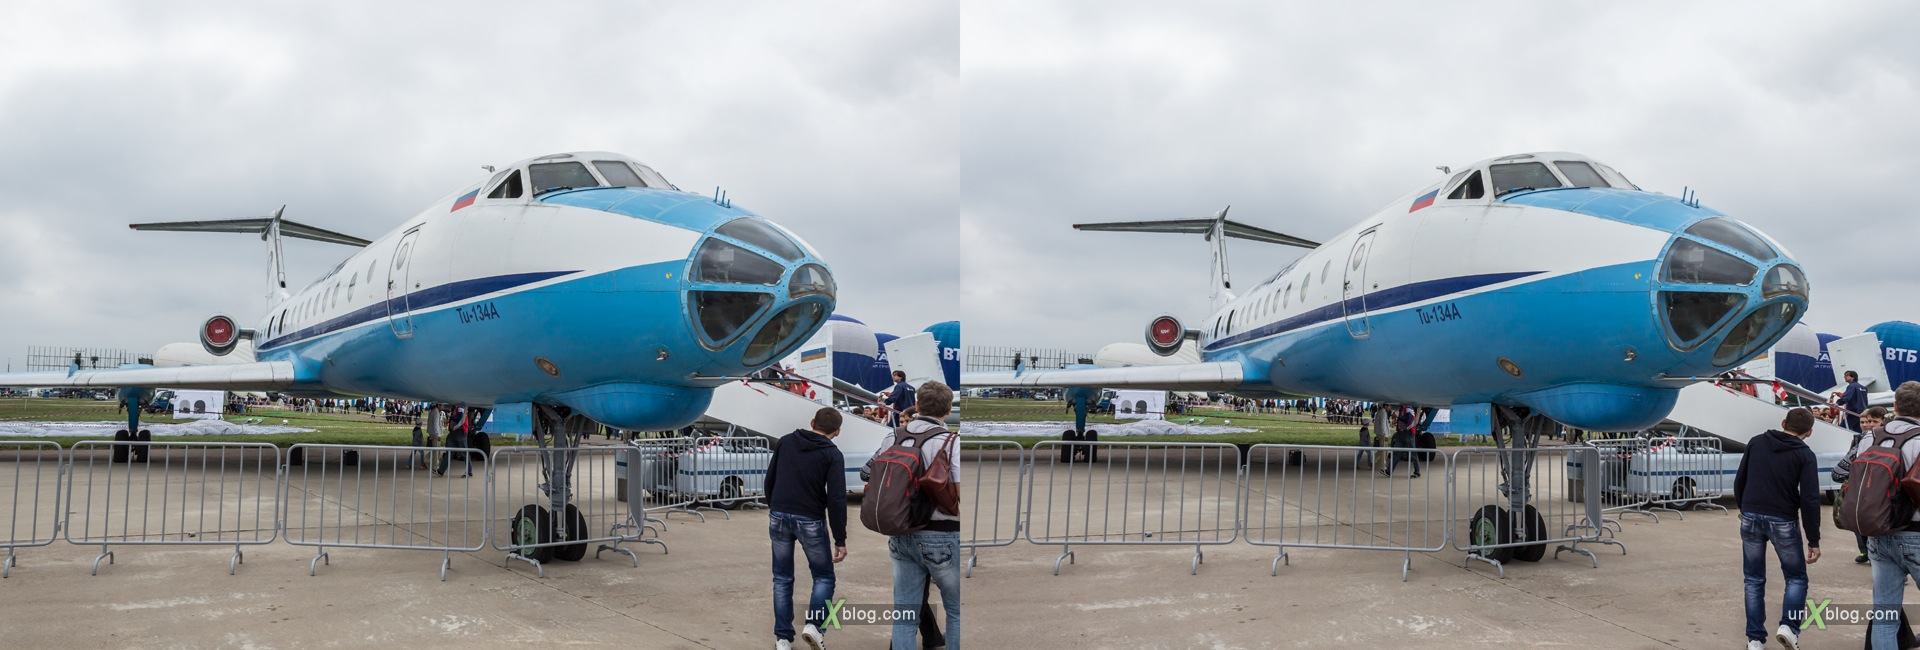 2013, Tu-134A, MAKS, International Aviation and Space Salon, Russia, Ramenskoye airfield, airplane, 3D, stereo pair, cross-eyed, crossview, cross view stereo pair, stereoscopic